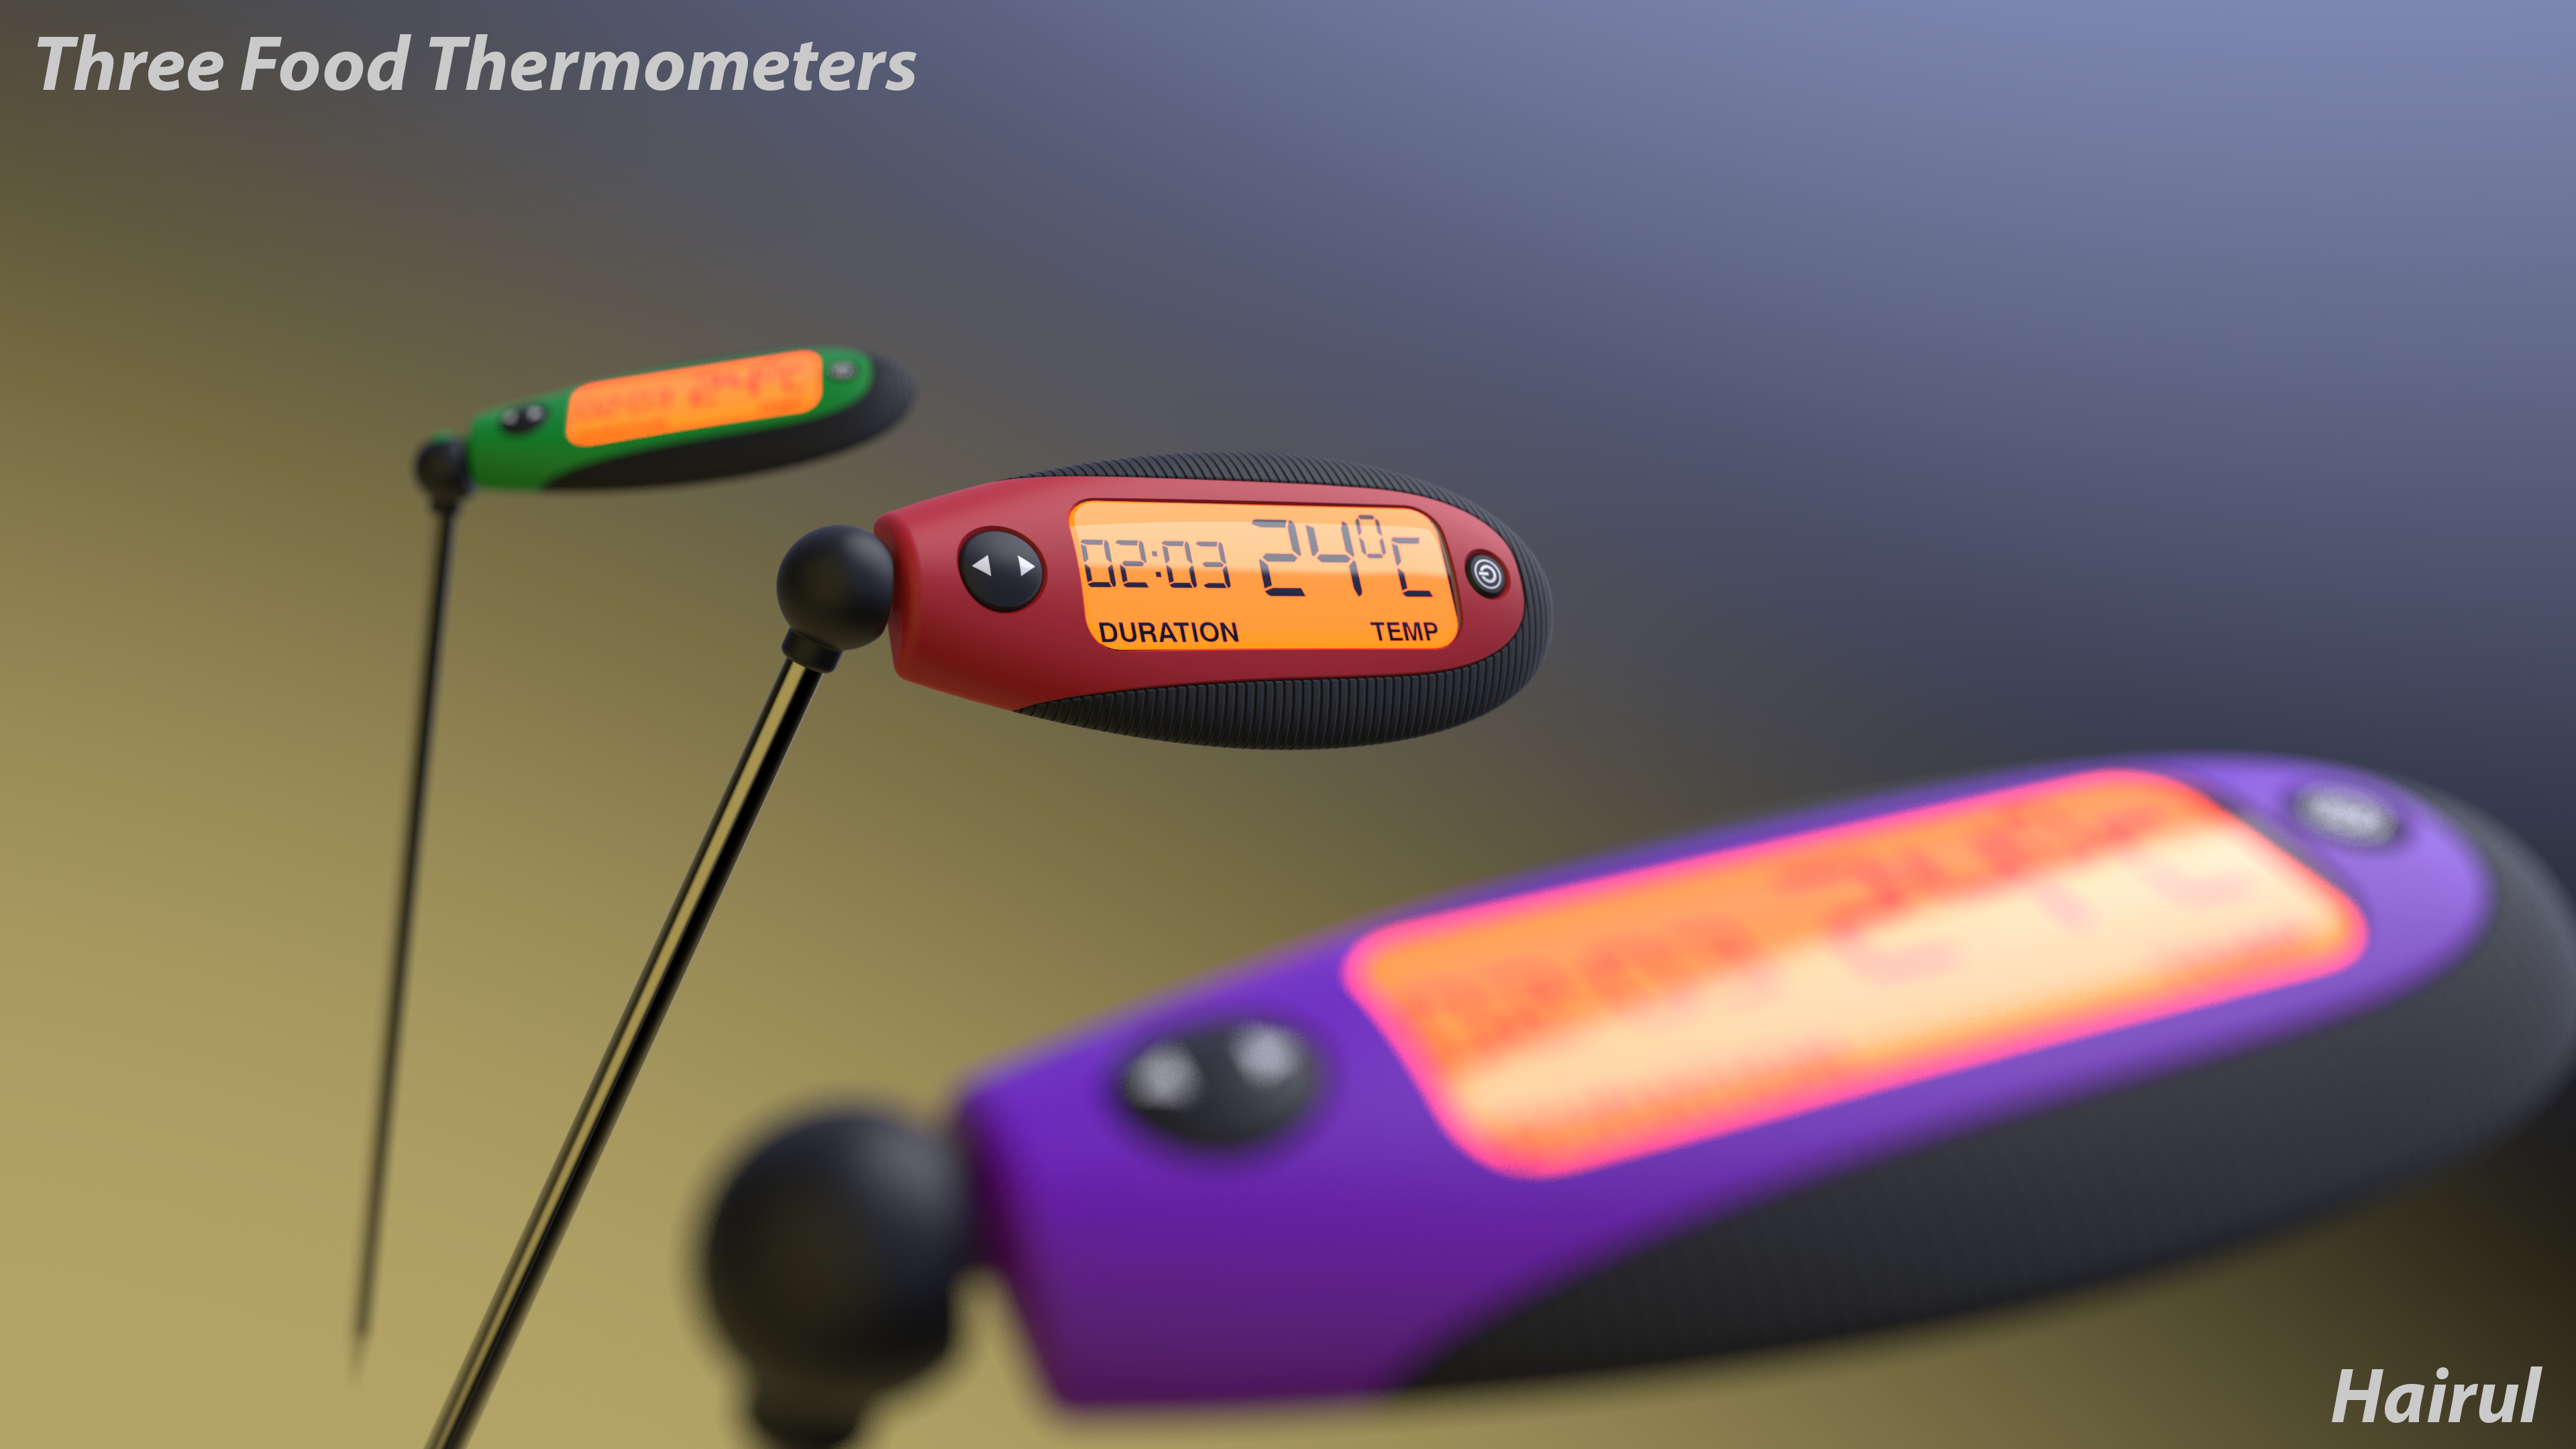 product modeling and visualisation lancers d product modeling and visualisation 3d model food thermometer self initiative project